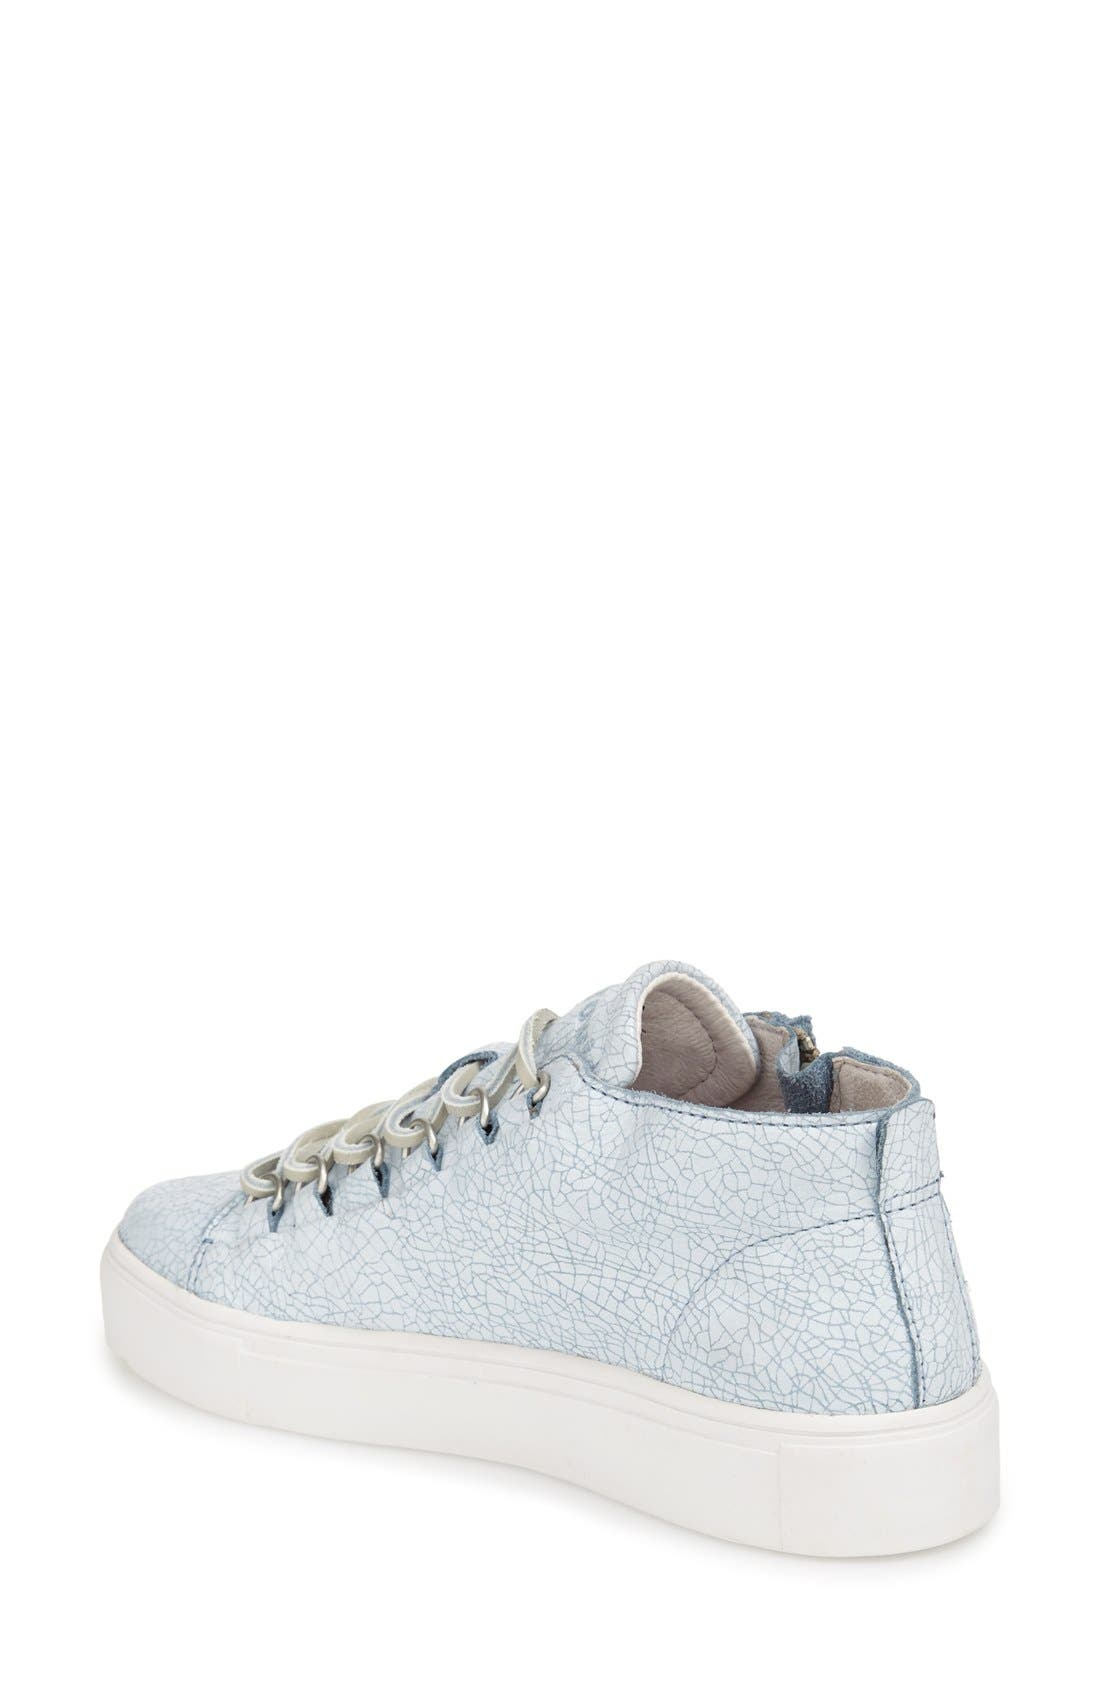 'LL60' Midi Sneaker,                             Alternate thumbnail 2, color,                             BLUE/ WHITE LEATHER